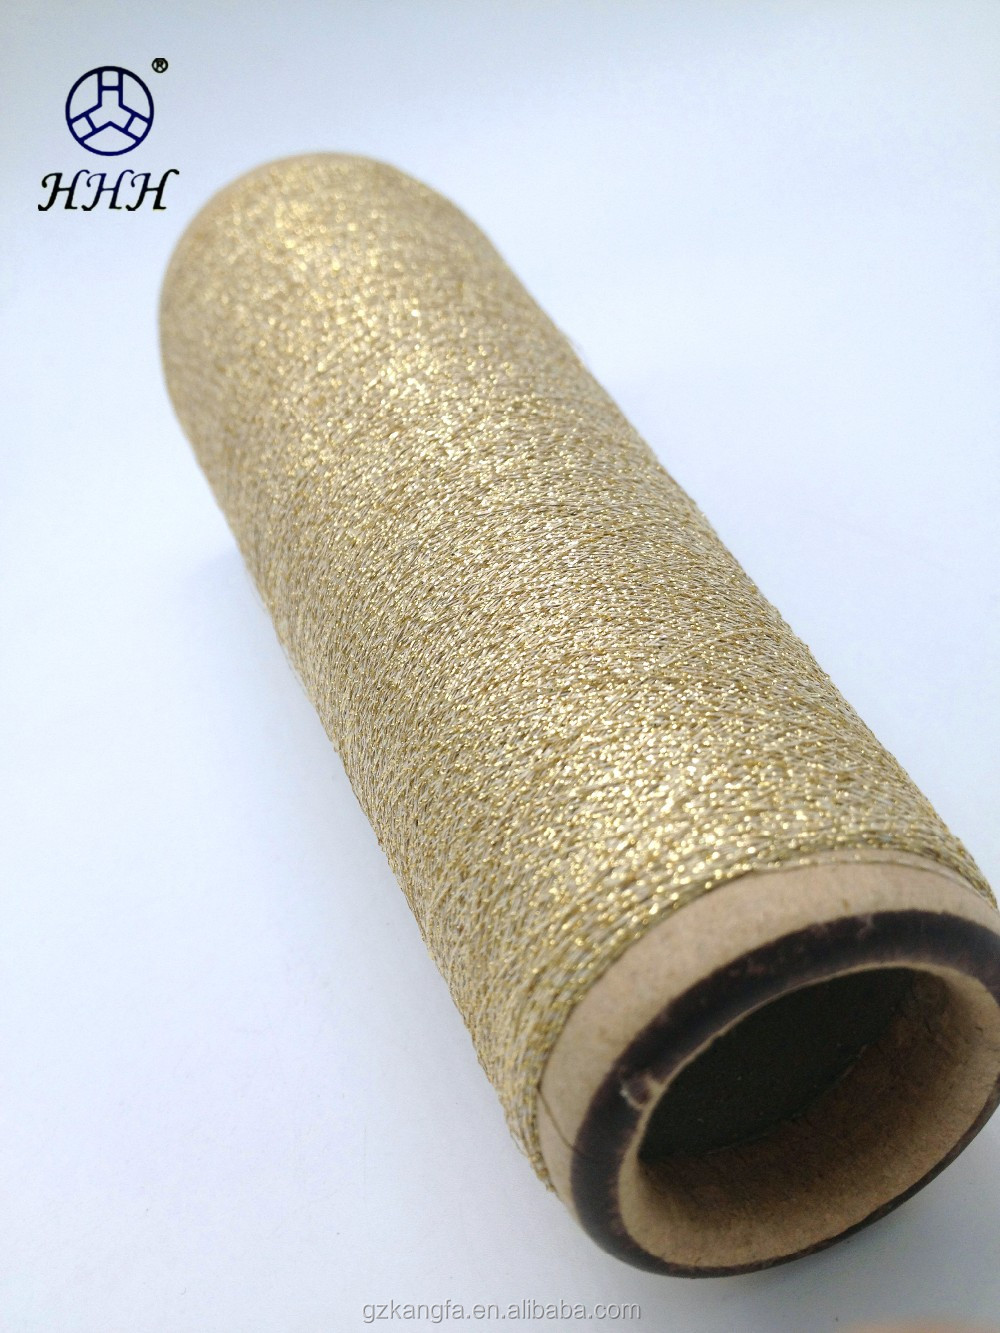 ST MS TYPE METALLIC YARN FOR EMBROIDERY METALLIC THREAD GLITTER YARN